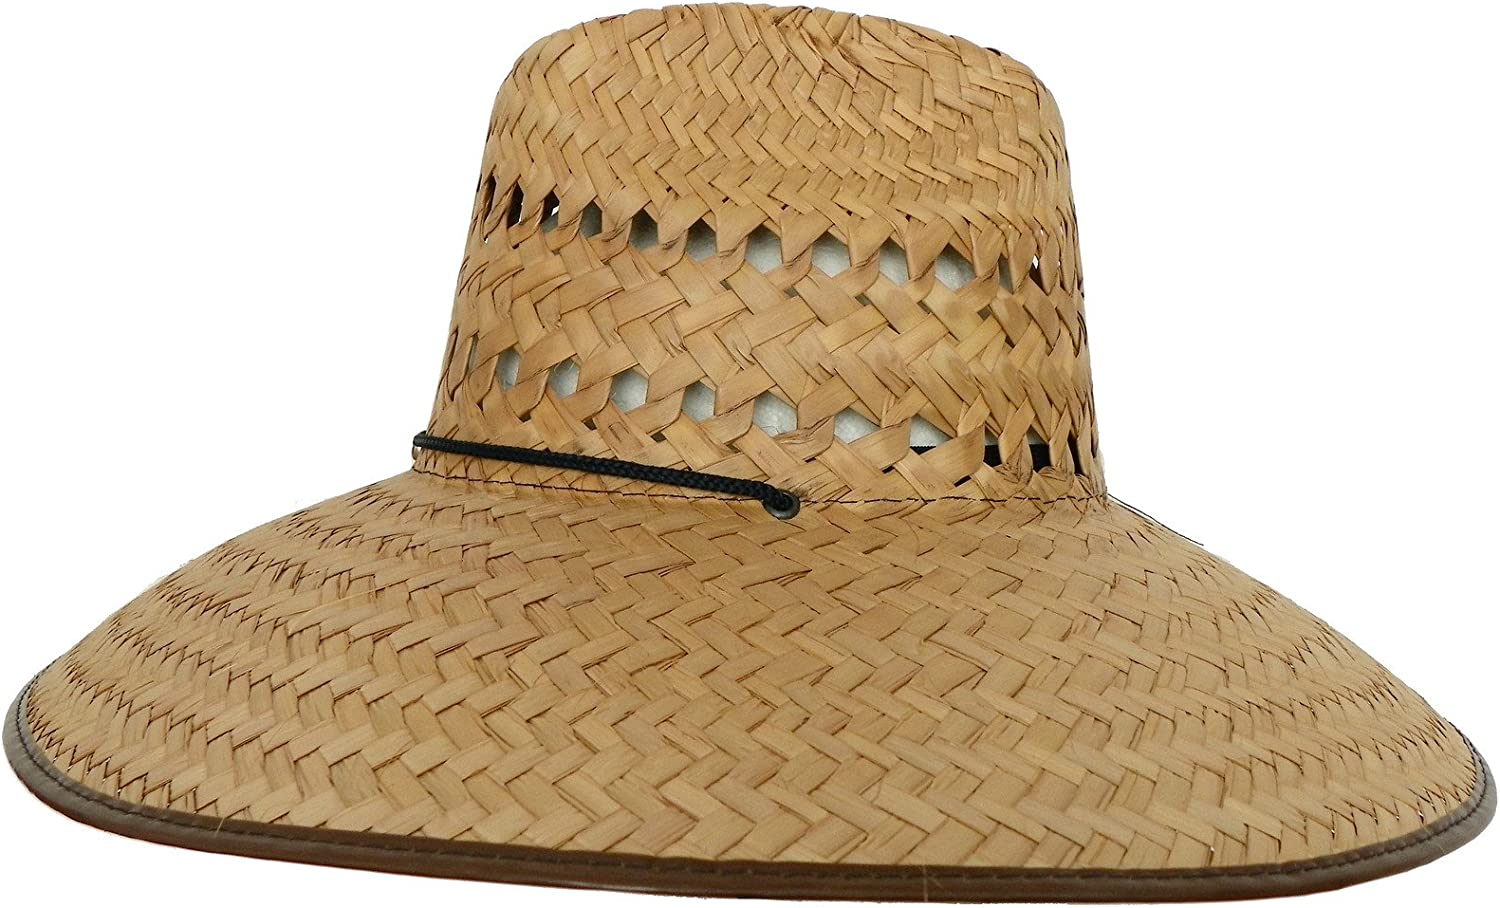 Headchange Wide Brim Lifeguard Hat Mexican Straw Beach Sun Summer Surf Safari